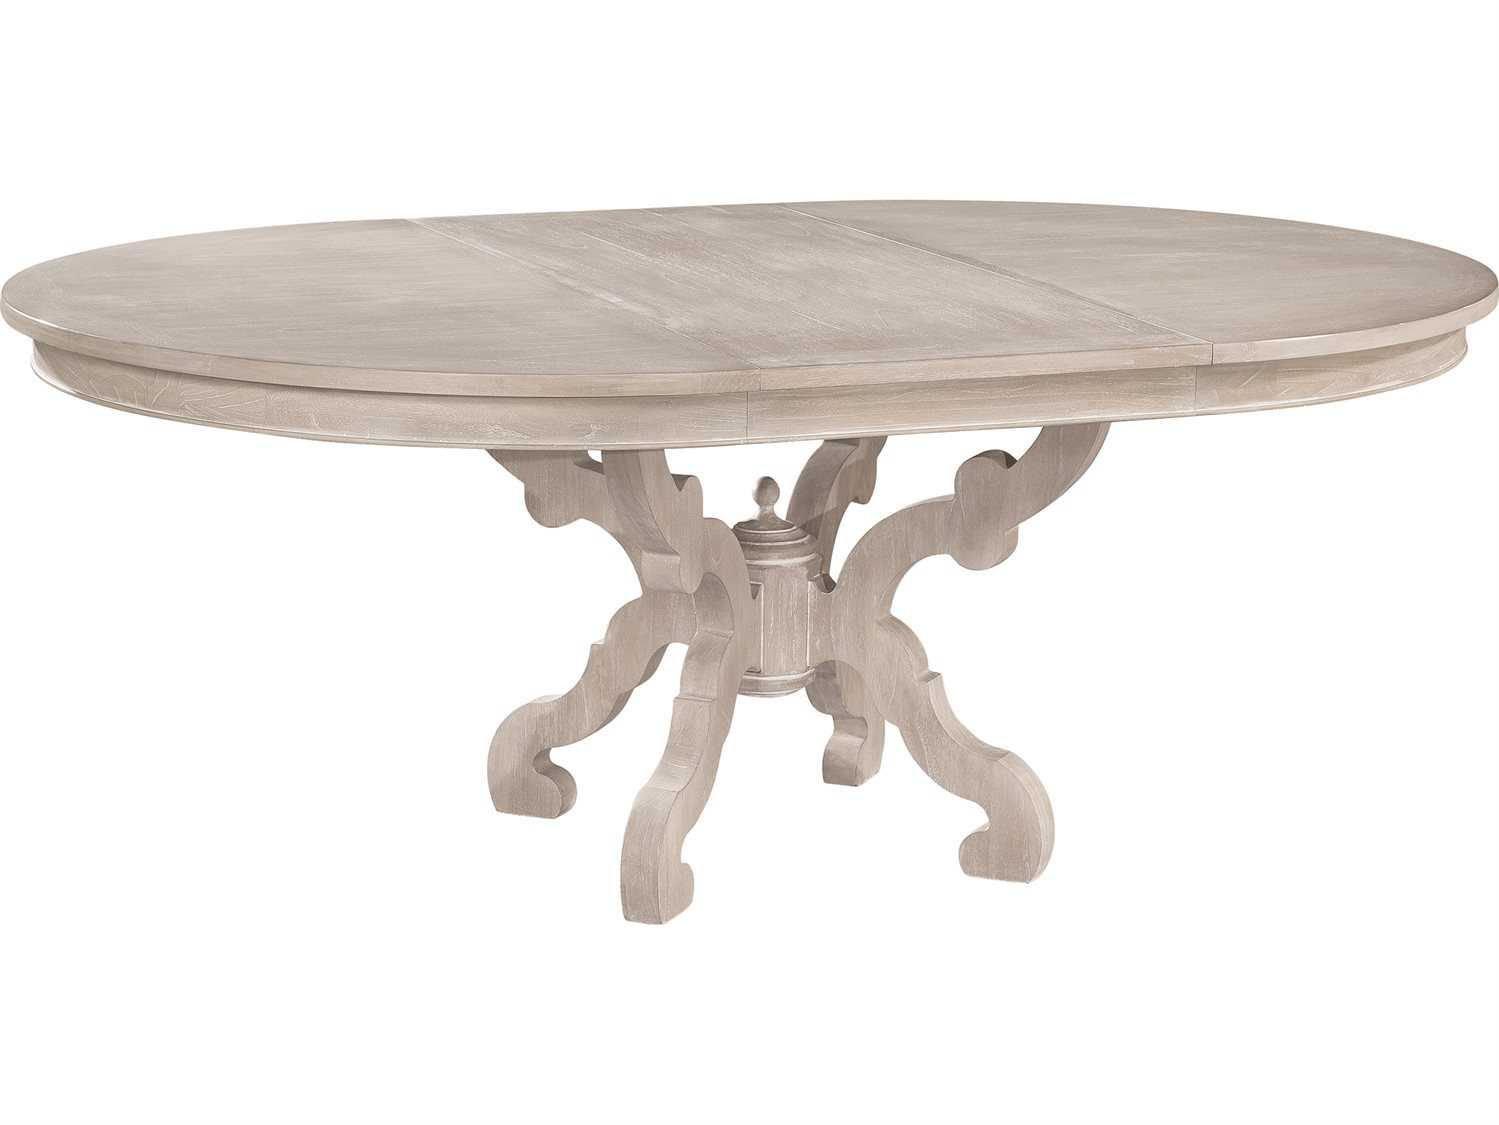 Hekman Suttons Bay Driftwood Baroque Round Dining Table